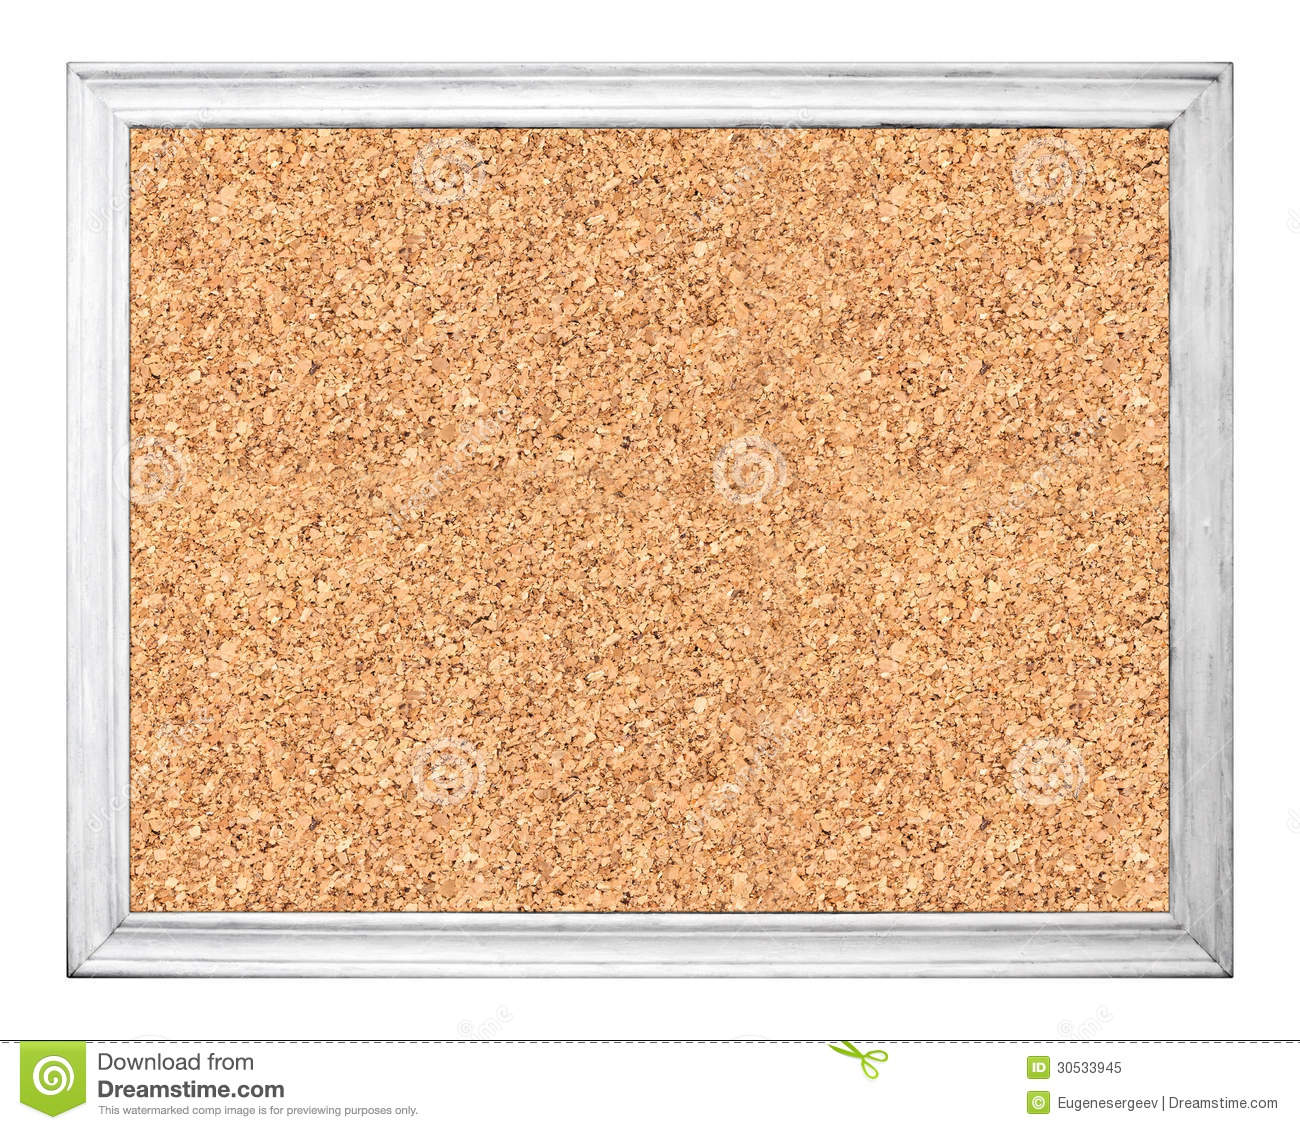 Empty Cork Board In White Wooden Frame Stock Image - Image of ...